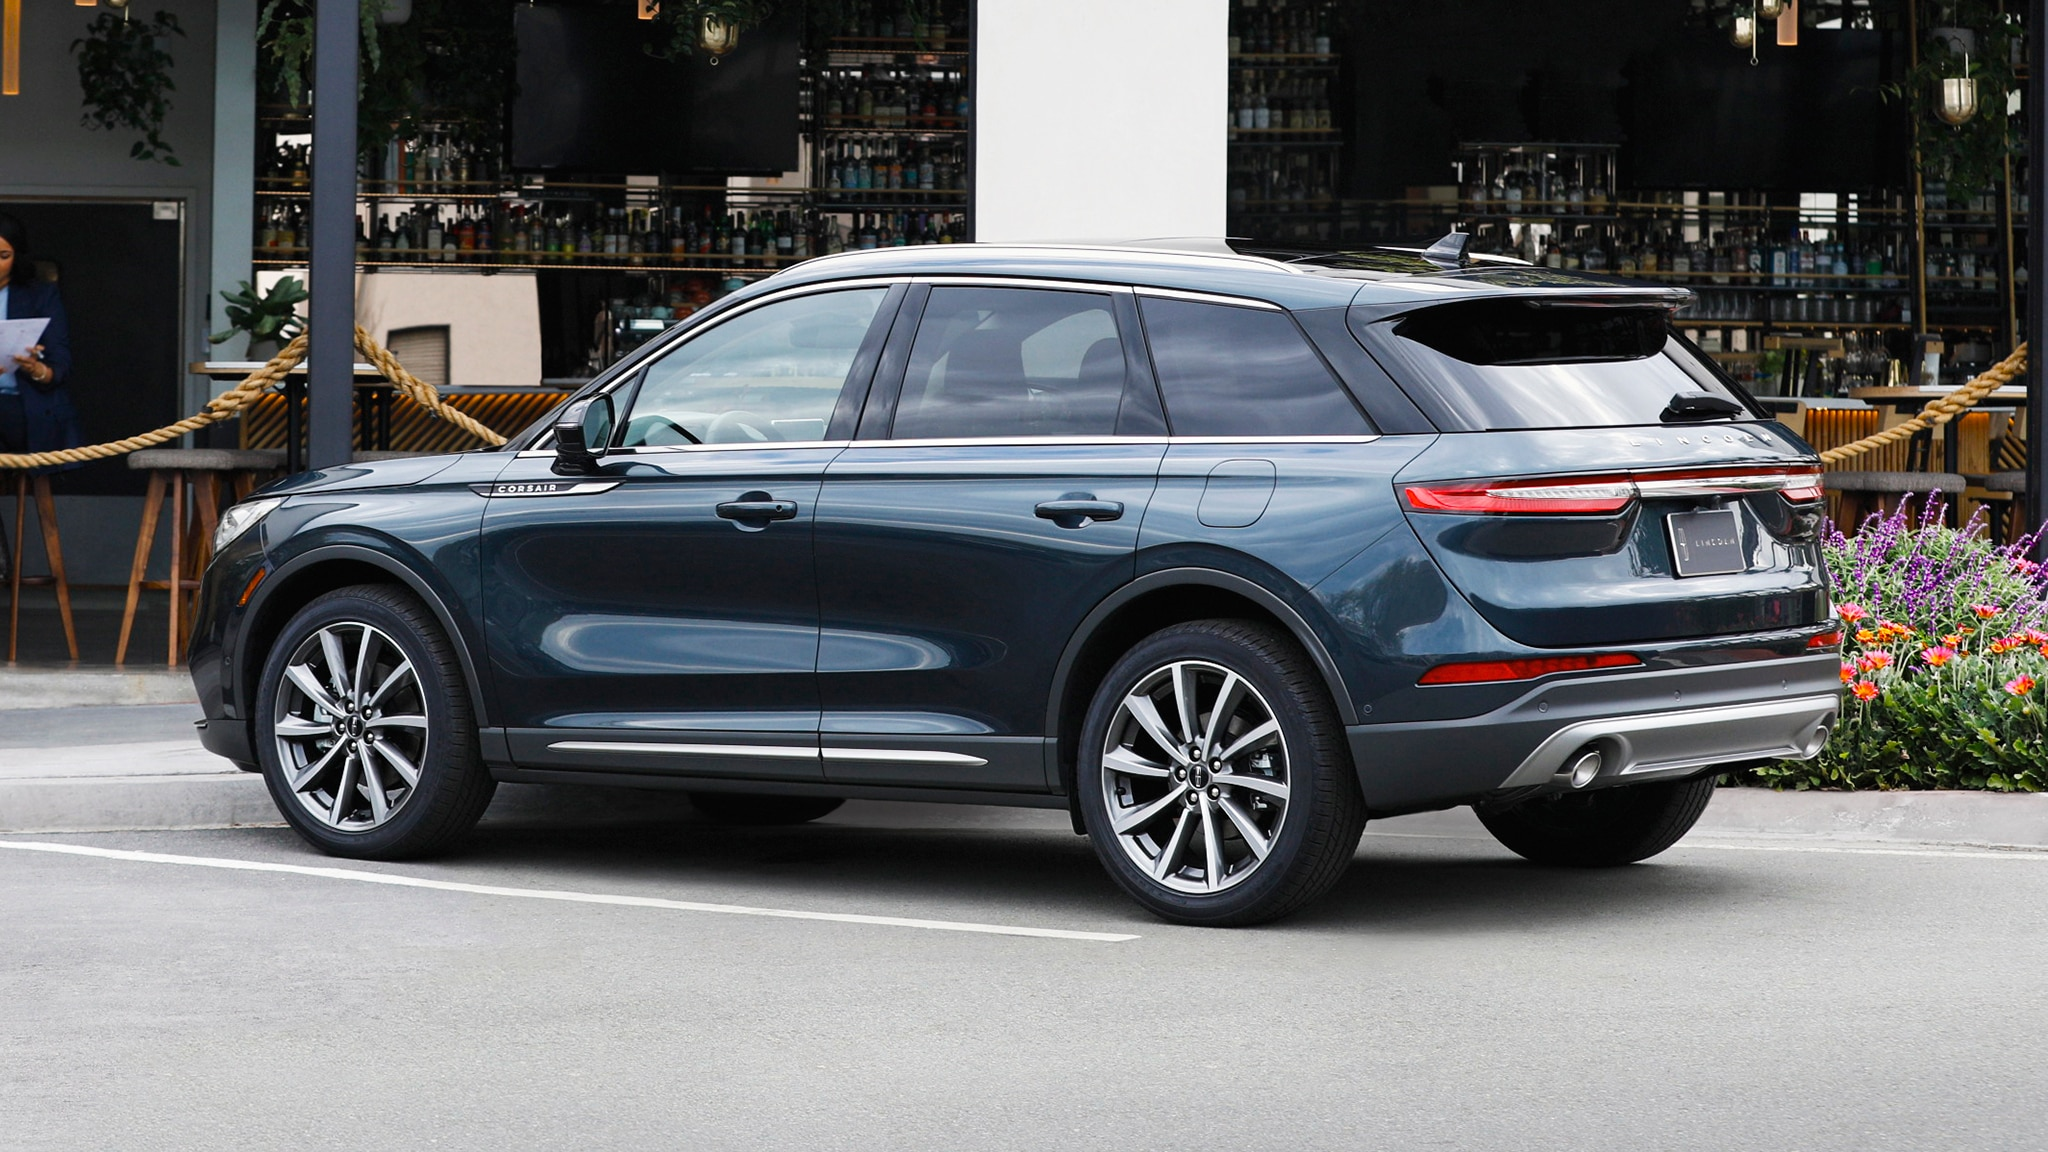 Car Remote Key >> Why the 2020 Lincoln Corsair Has a Chance to Succeed | Automobile Magazine